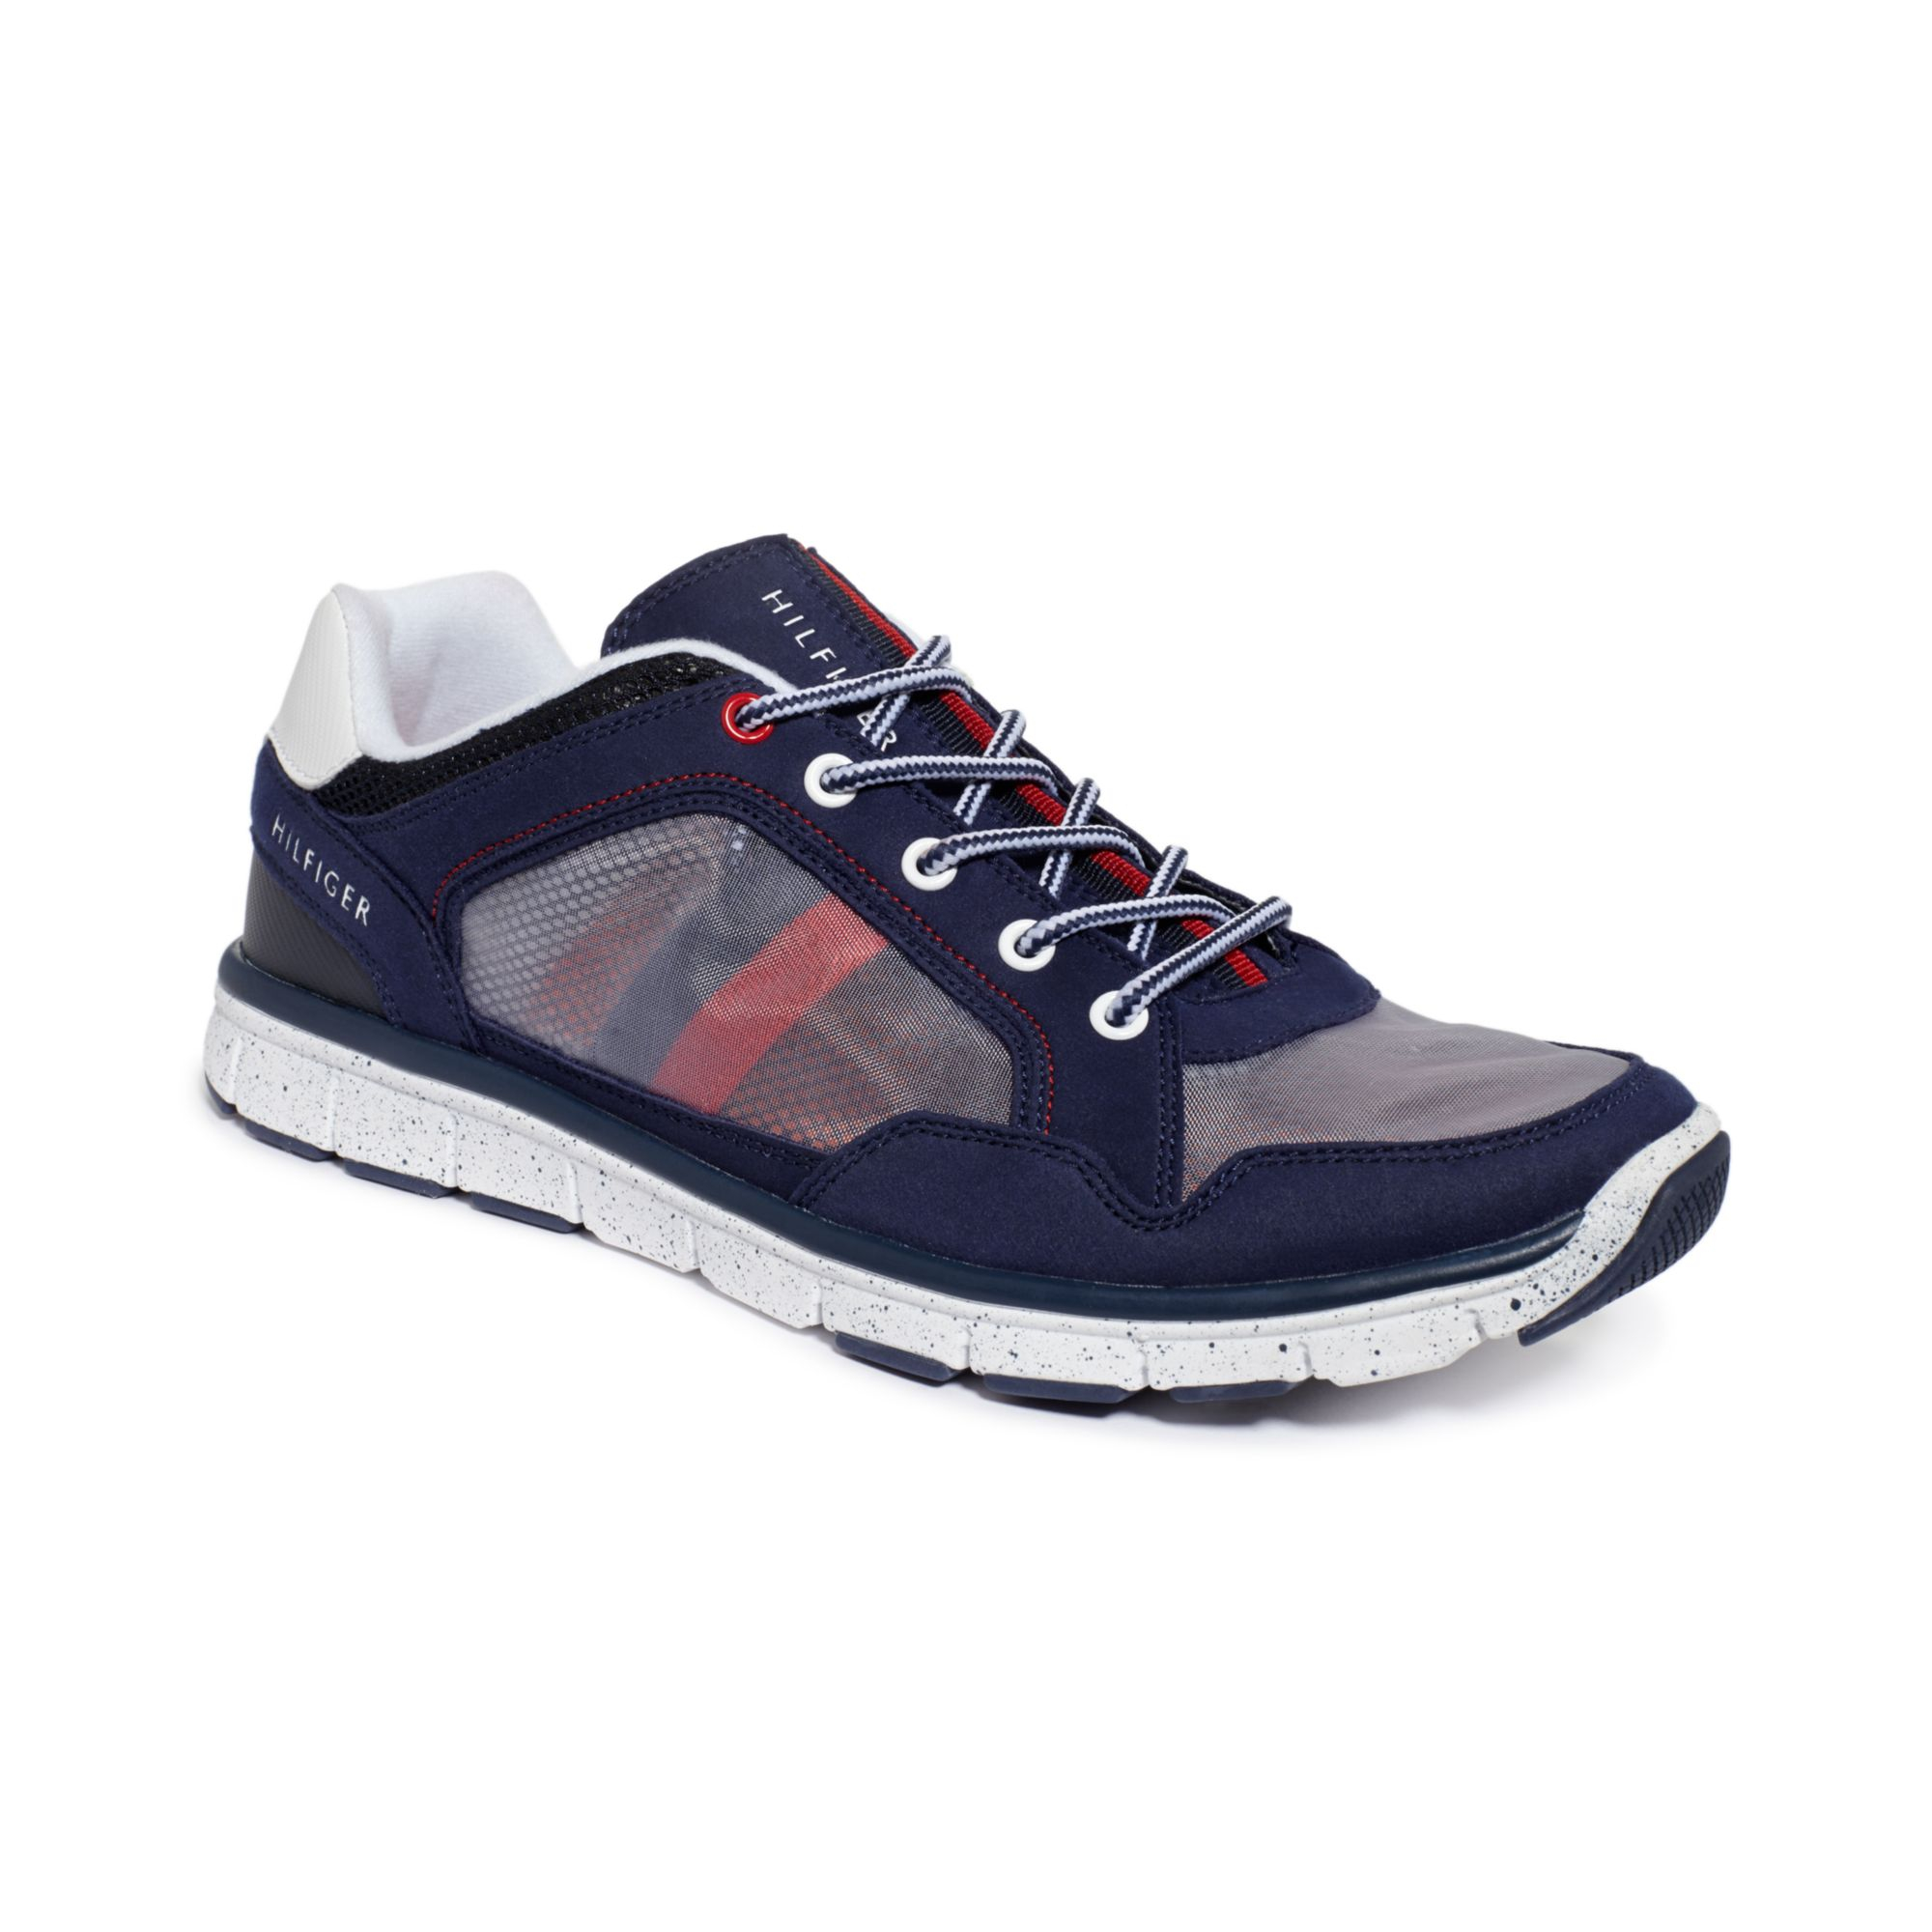 tommy hilfiger krone sneakers in blue for men lyst. Black Bedroom Furniture Sets. Home Design Ideas